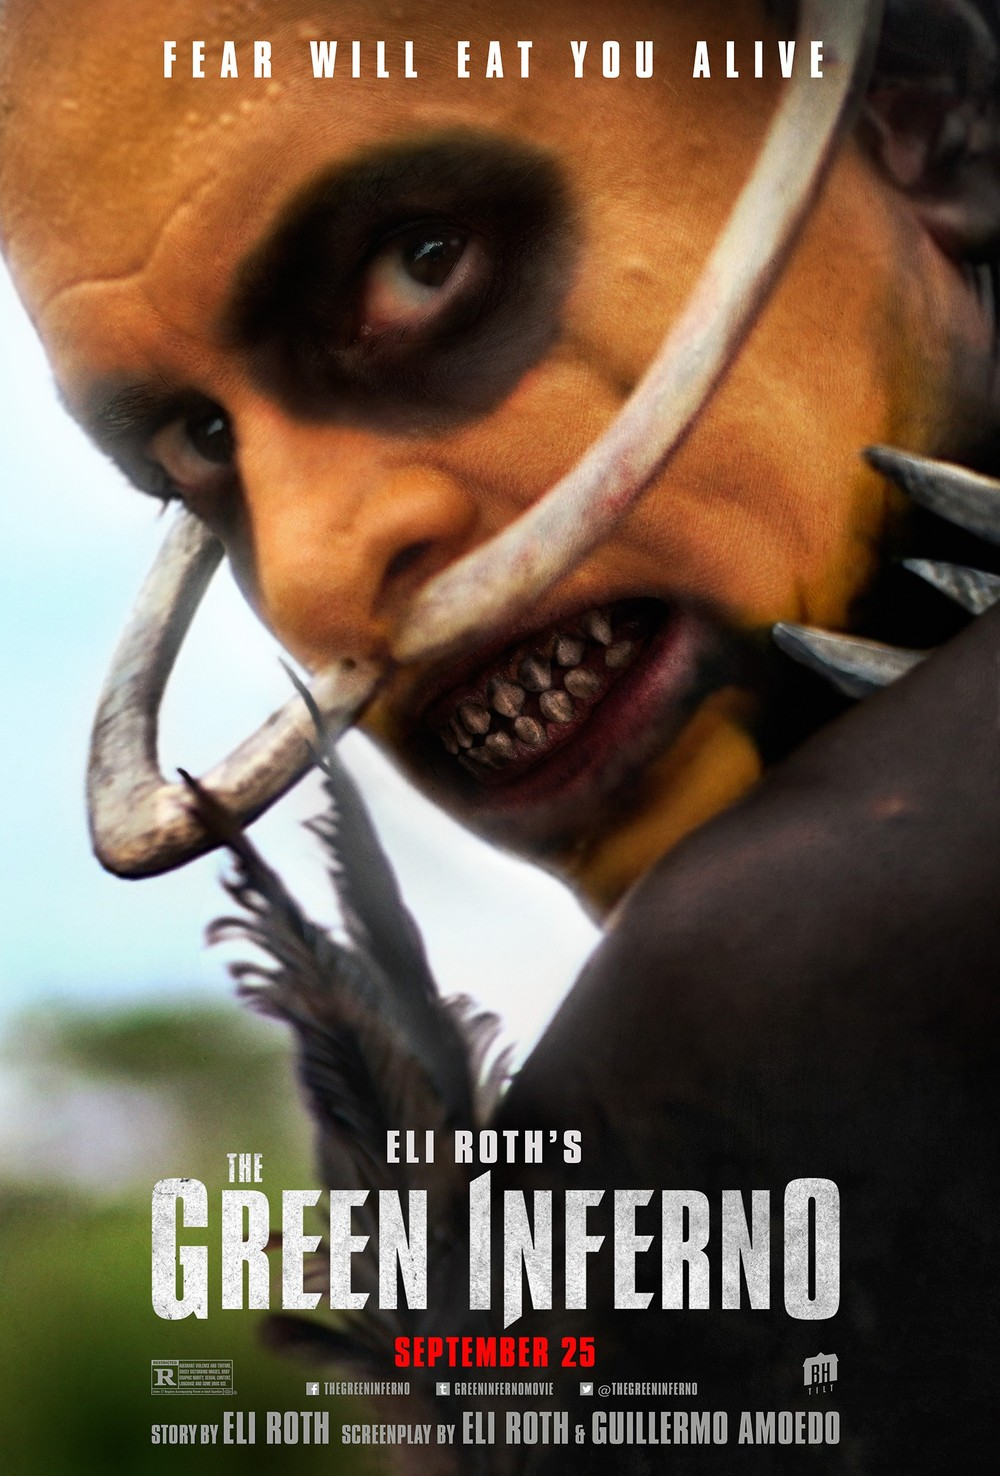 The Green Inferno Release Date Set for September